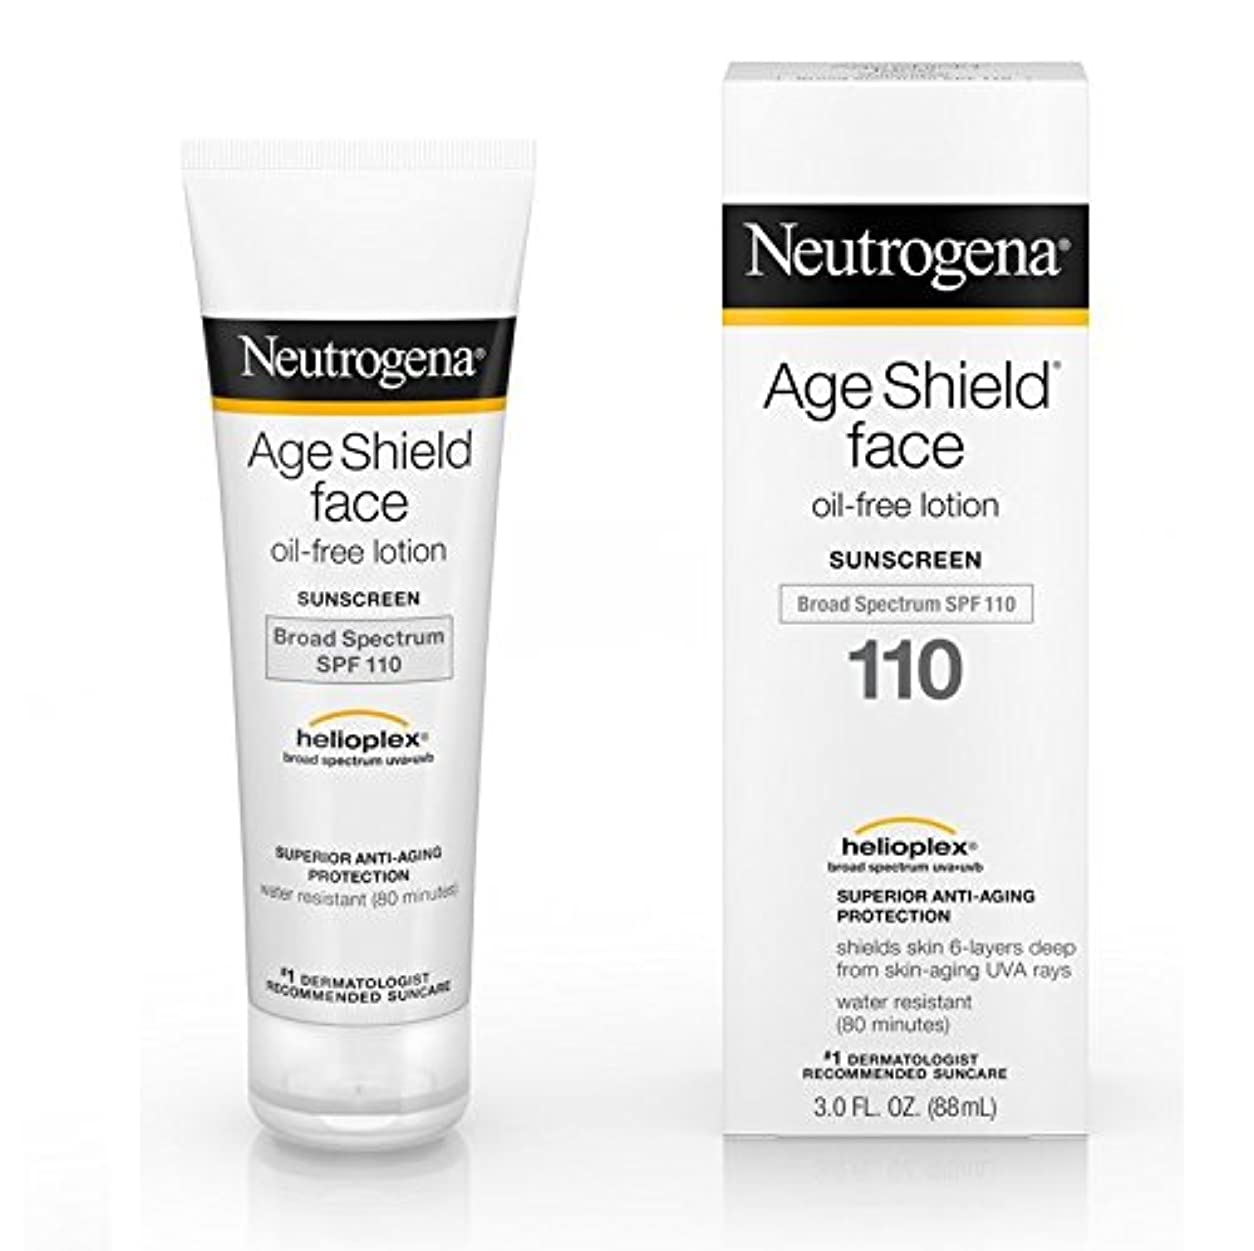 【海外直送品】Neutrogena Age Shield® Face Oil-Free Lotion Sunscreen Broad Spectrum SPF 110 - 3 FL OZ(88ml)